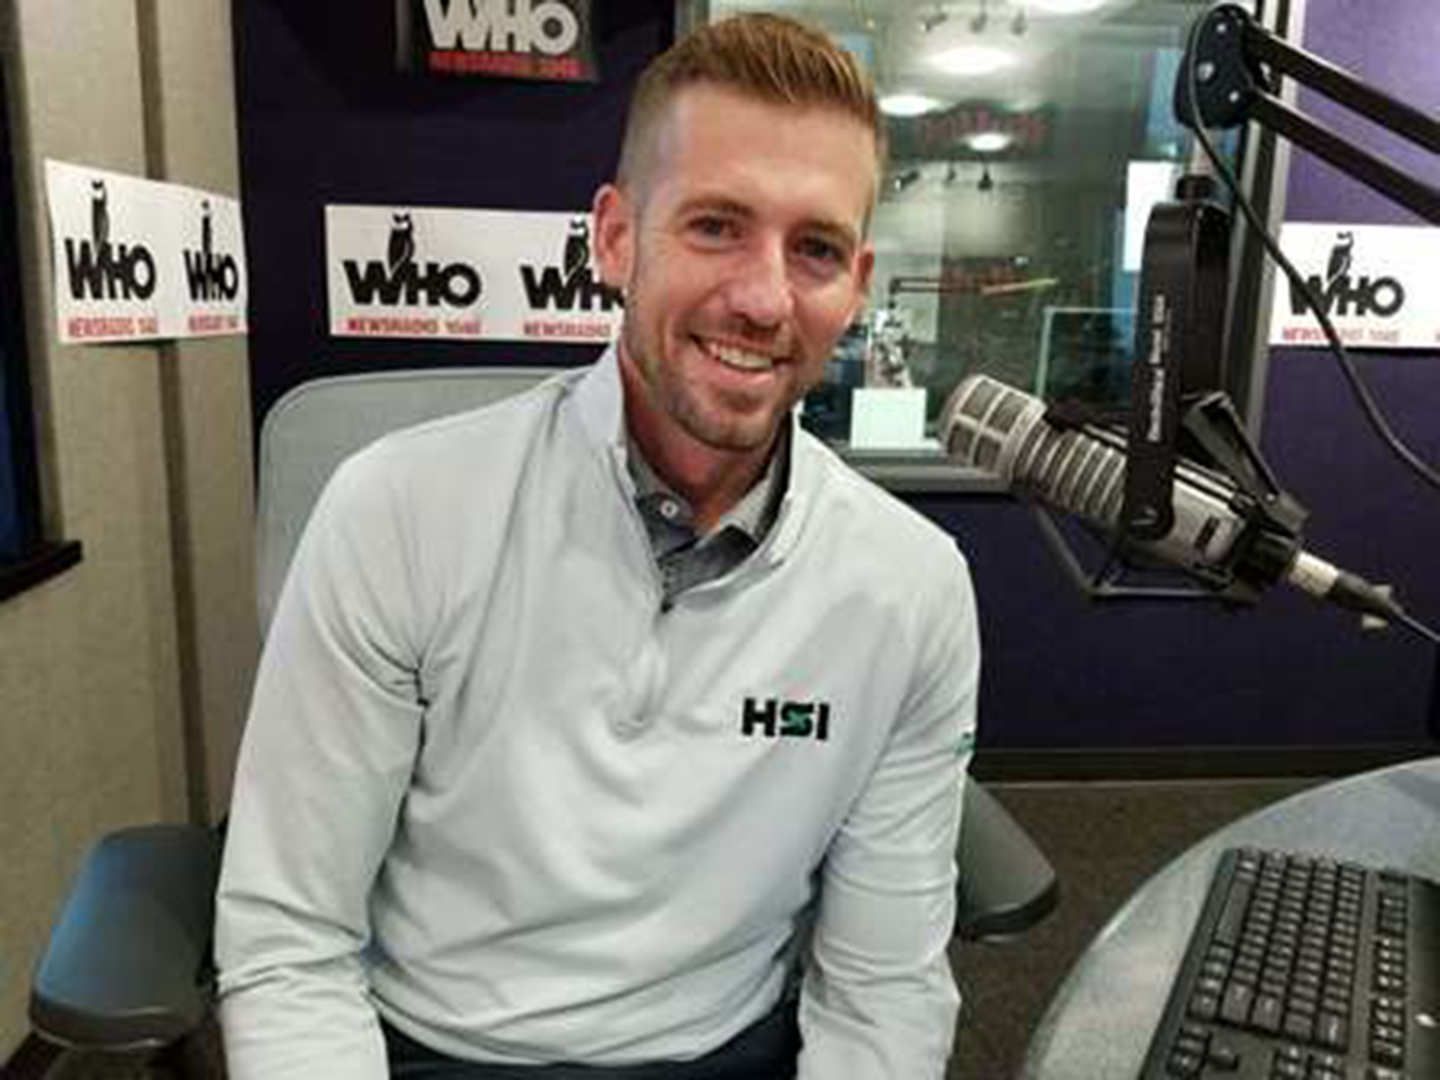 Joe Smith dropped in to chat with Van & Bonnie on WHO Radio this morning to talk about fall home maintenance tips and what to put on those checklists.